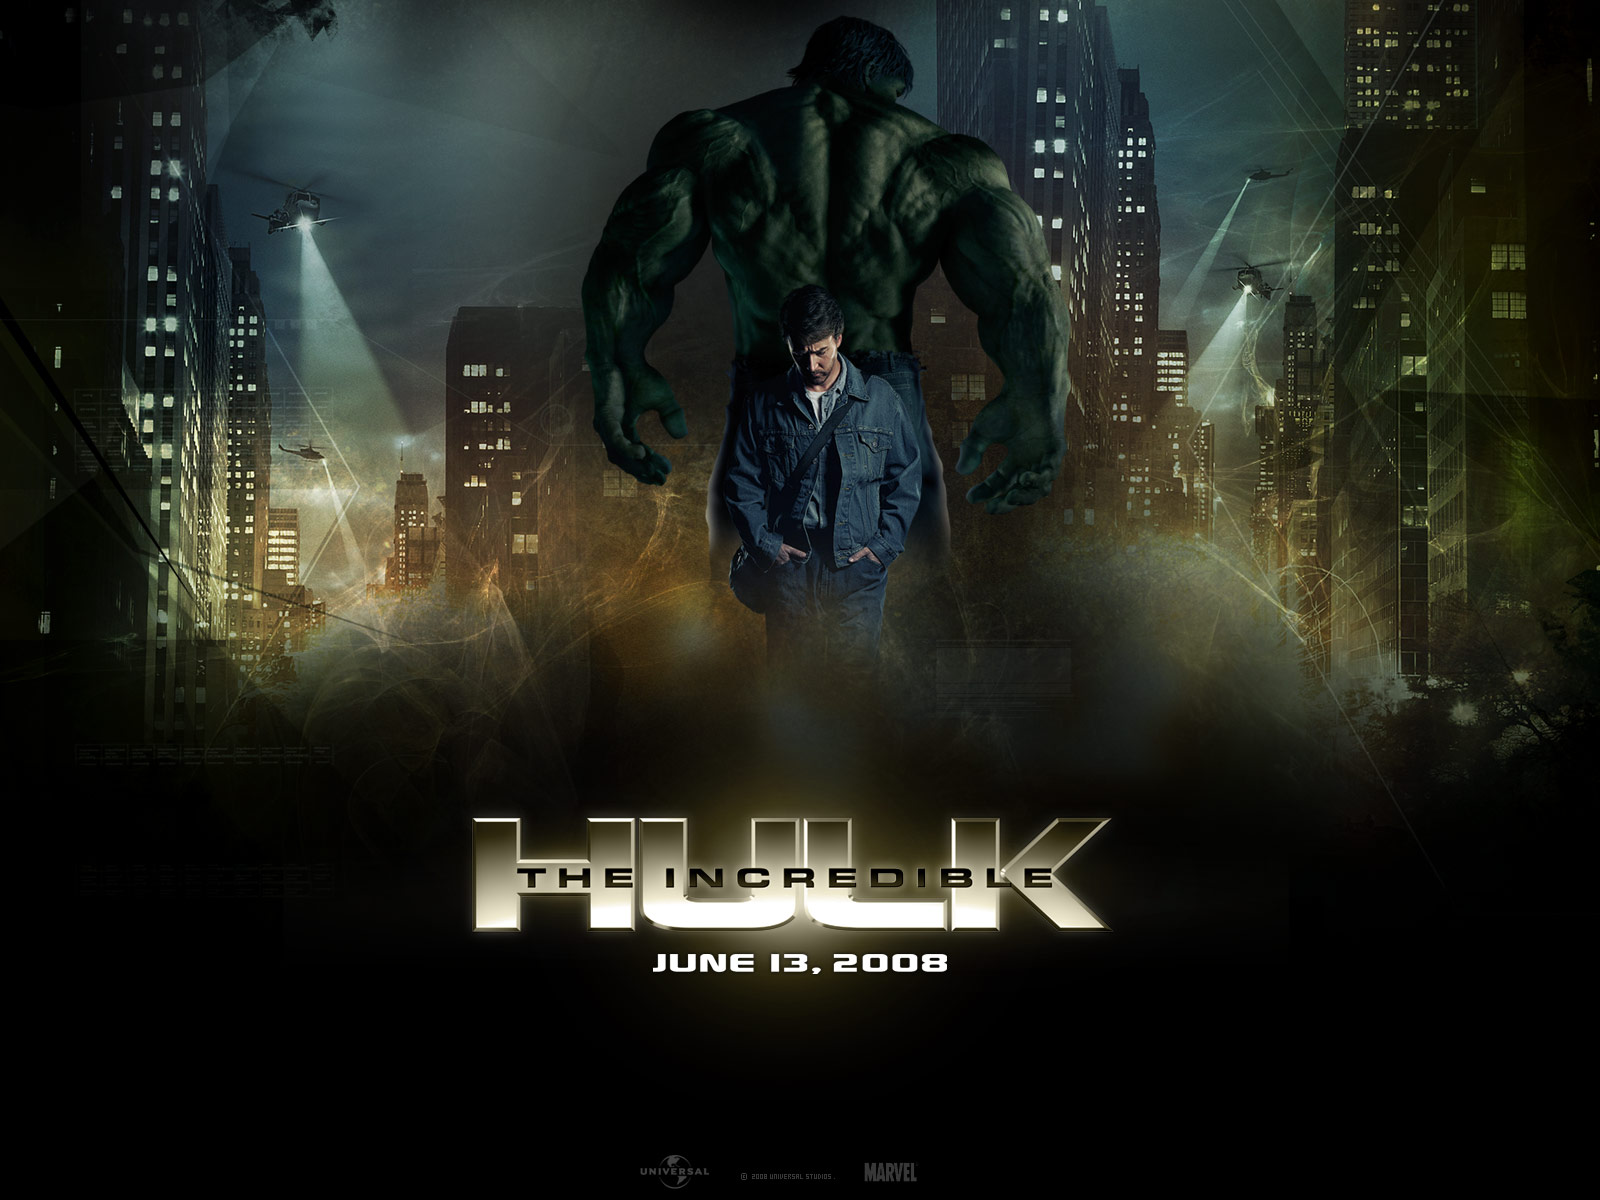 http://3.bp.blogspot.com/_pft5lIQhJ7s/TQdnkOTjFJI/AAAAAAAAAJw/oPdpeInA9ww/s1600/the_incredible_hulk%252C_2008%252C_edward_norton.jpg